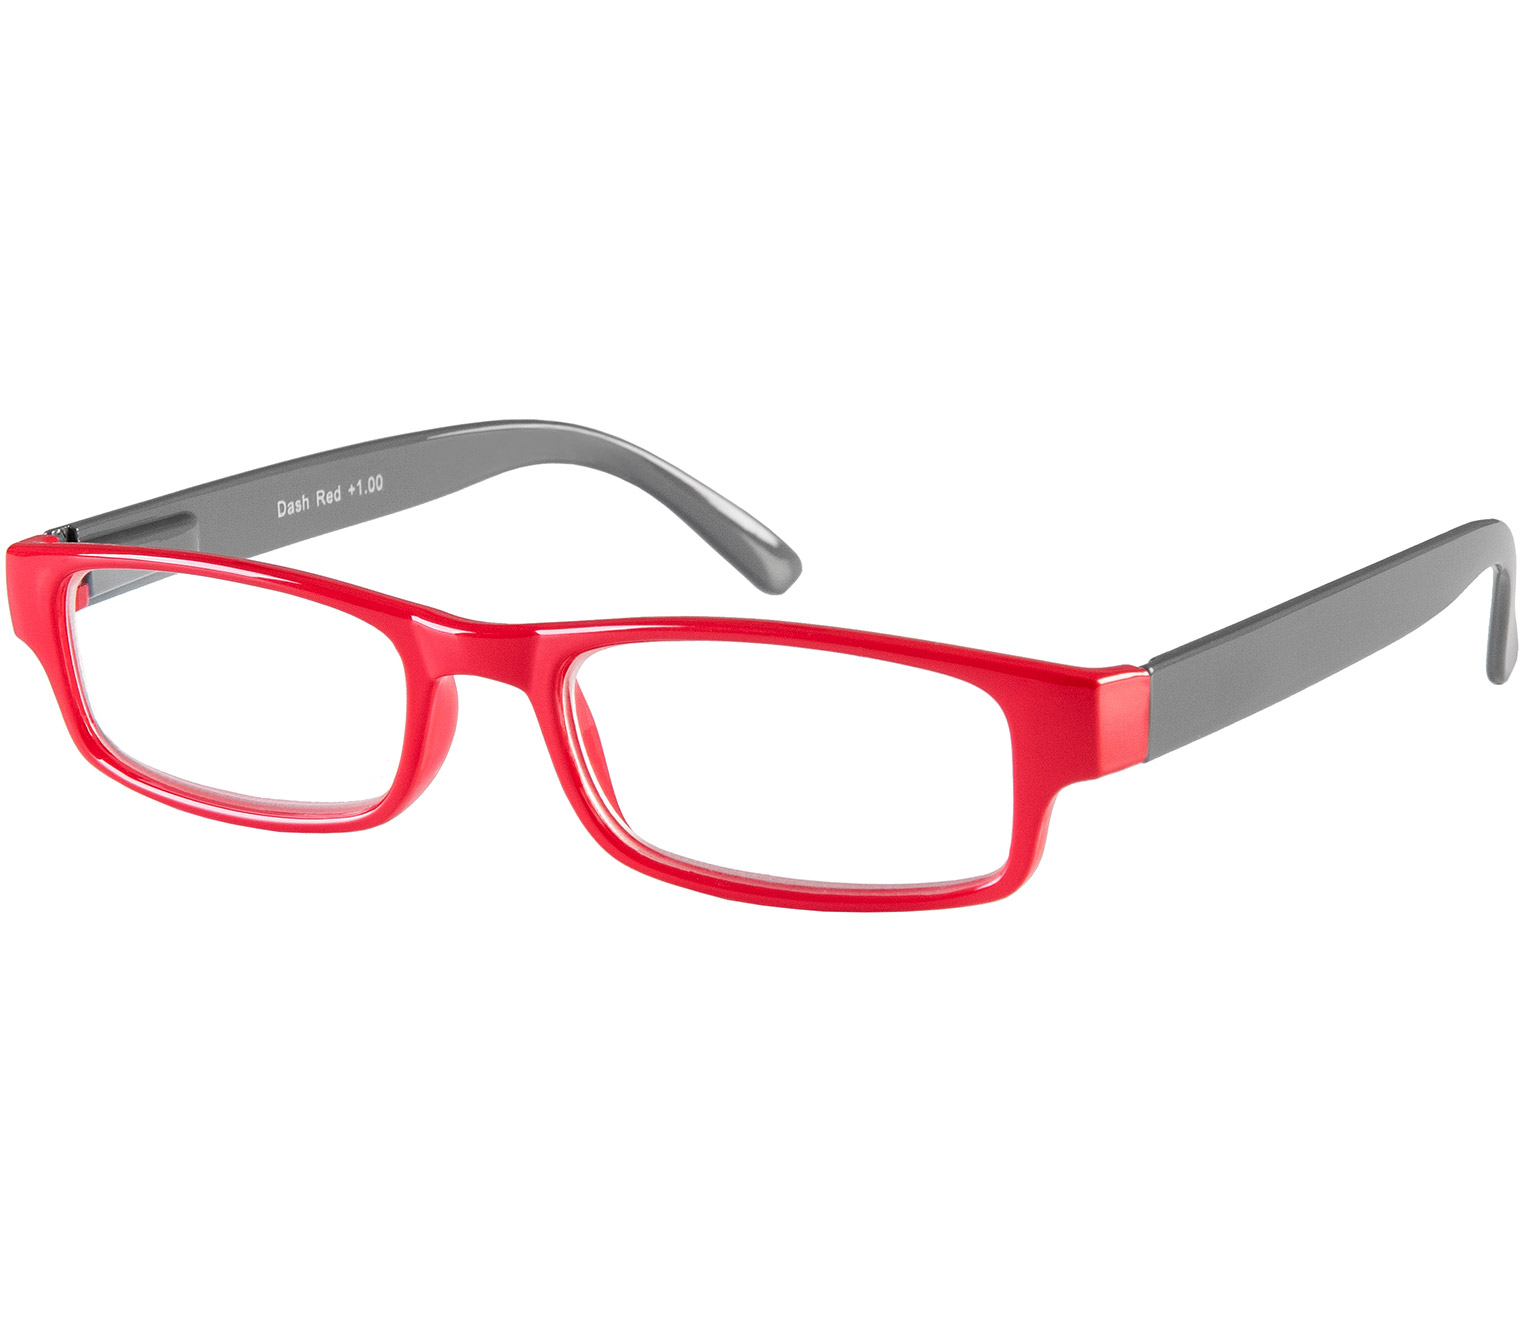 Main Image (Angle) - Dash (Red) Classic Reading Glasses